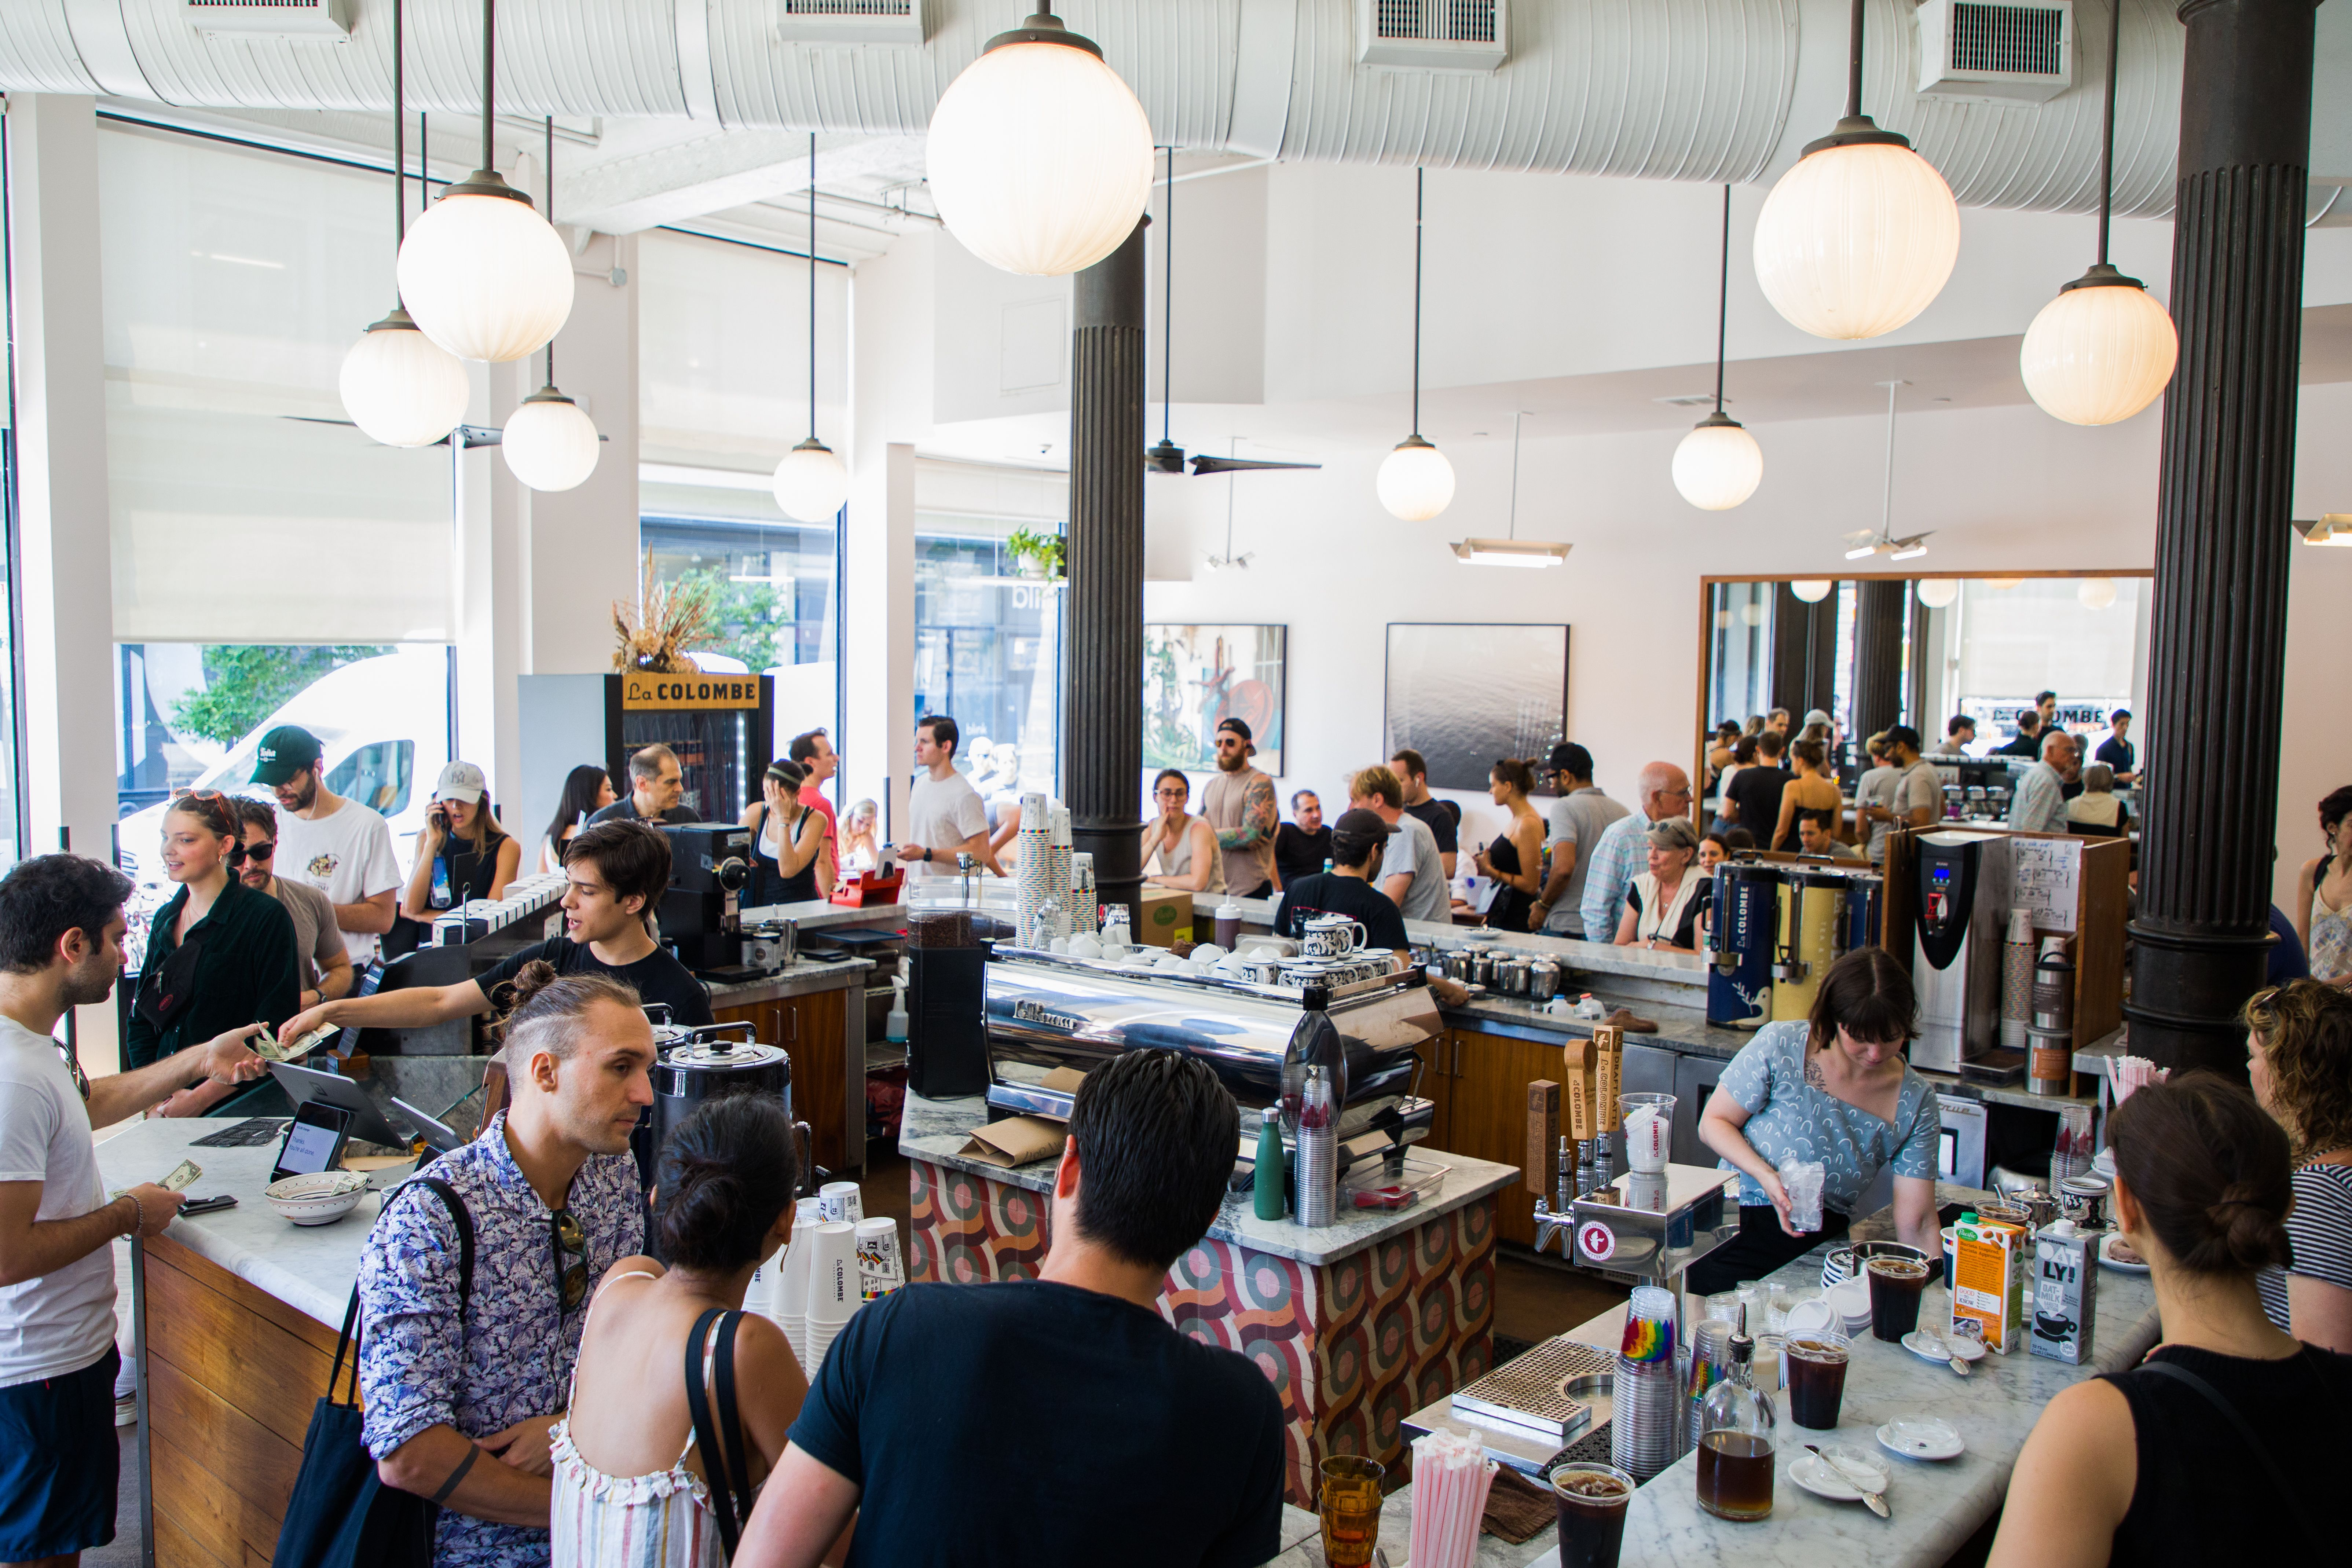 Noho Nyc In 2020 Cafe Coffee Shop Shopping Near Me